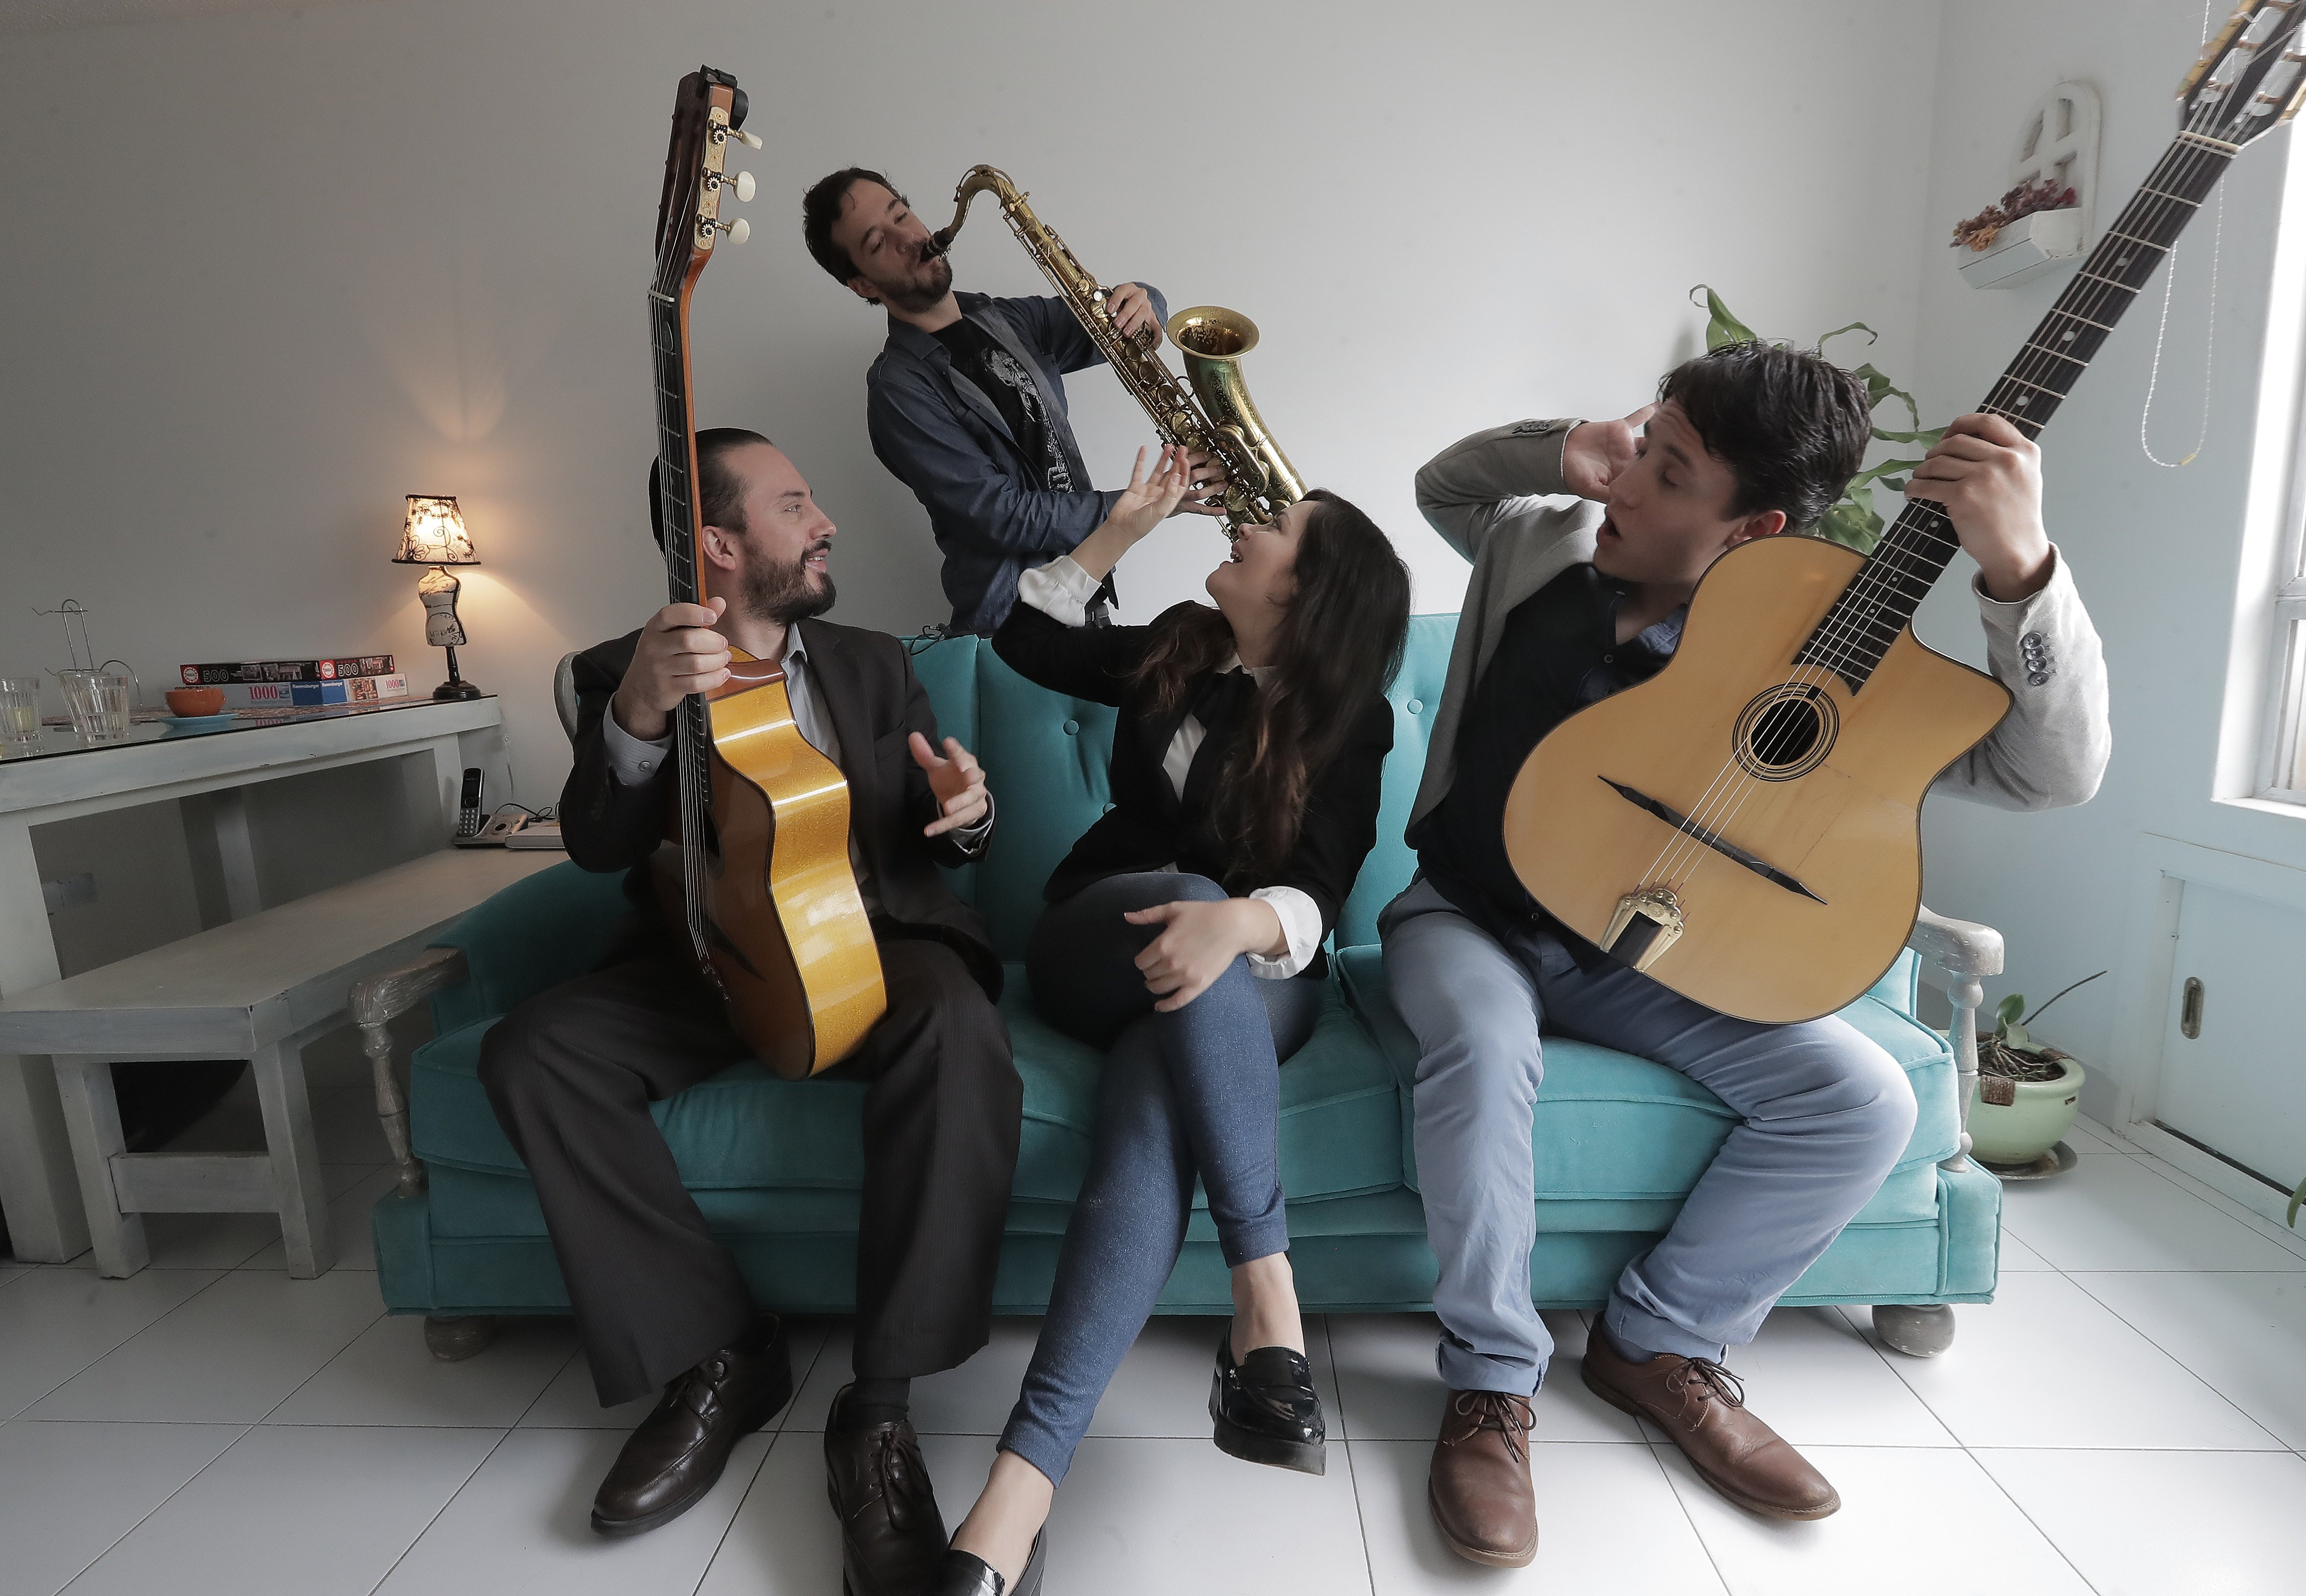 Swingfónica is a jazz manouche ensemble based in Mexico City